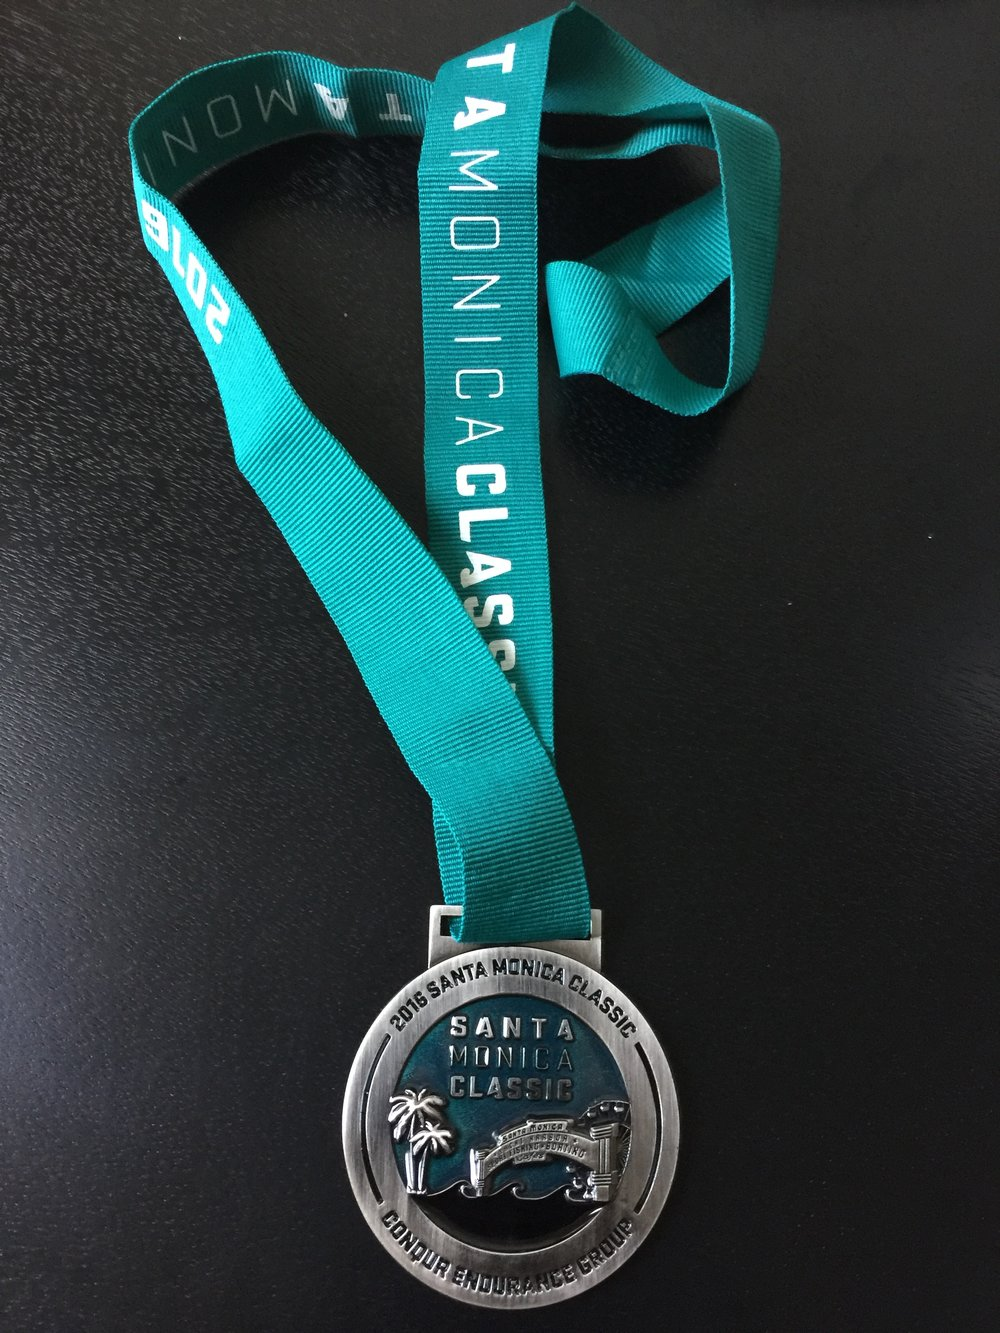 Santa Monica Classic 10K Finisher's Medal